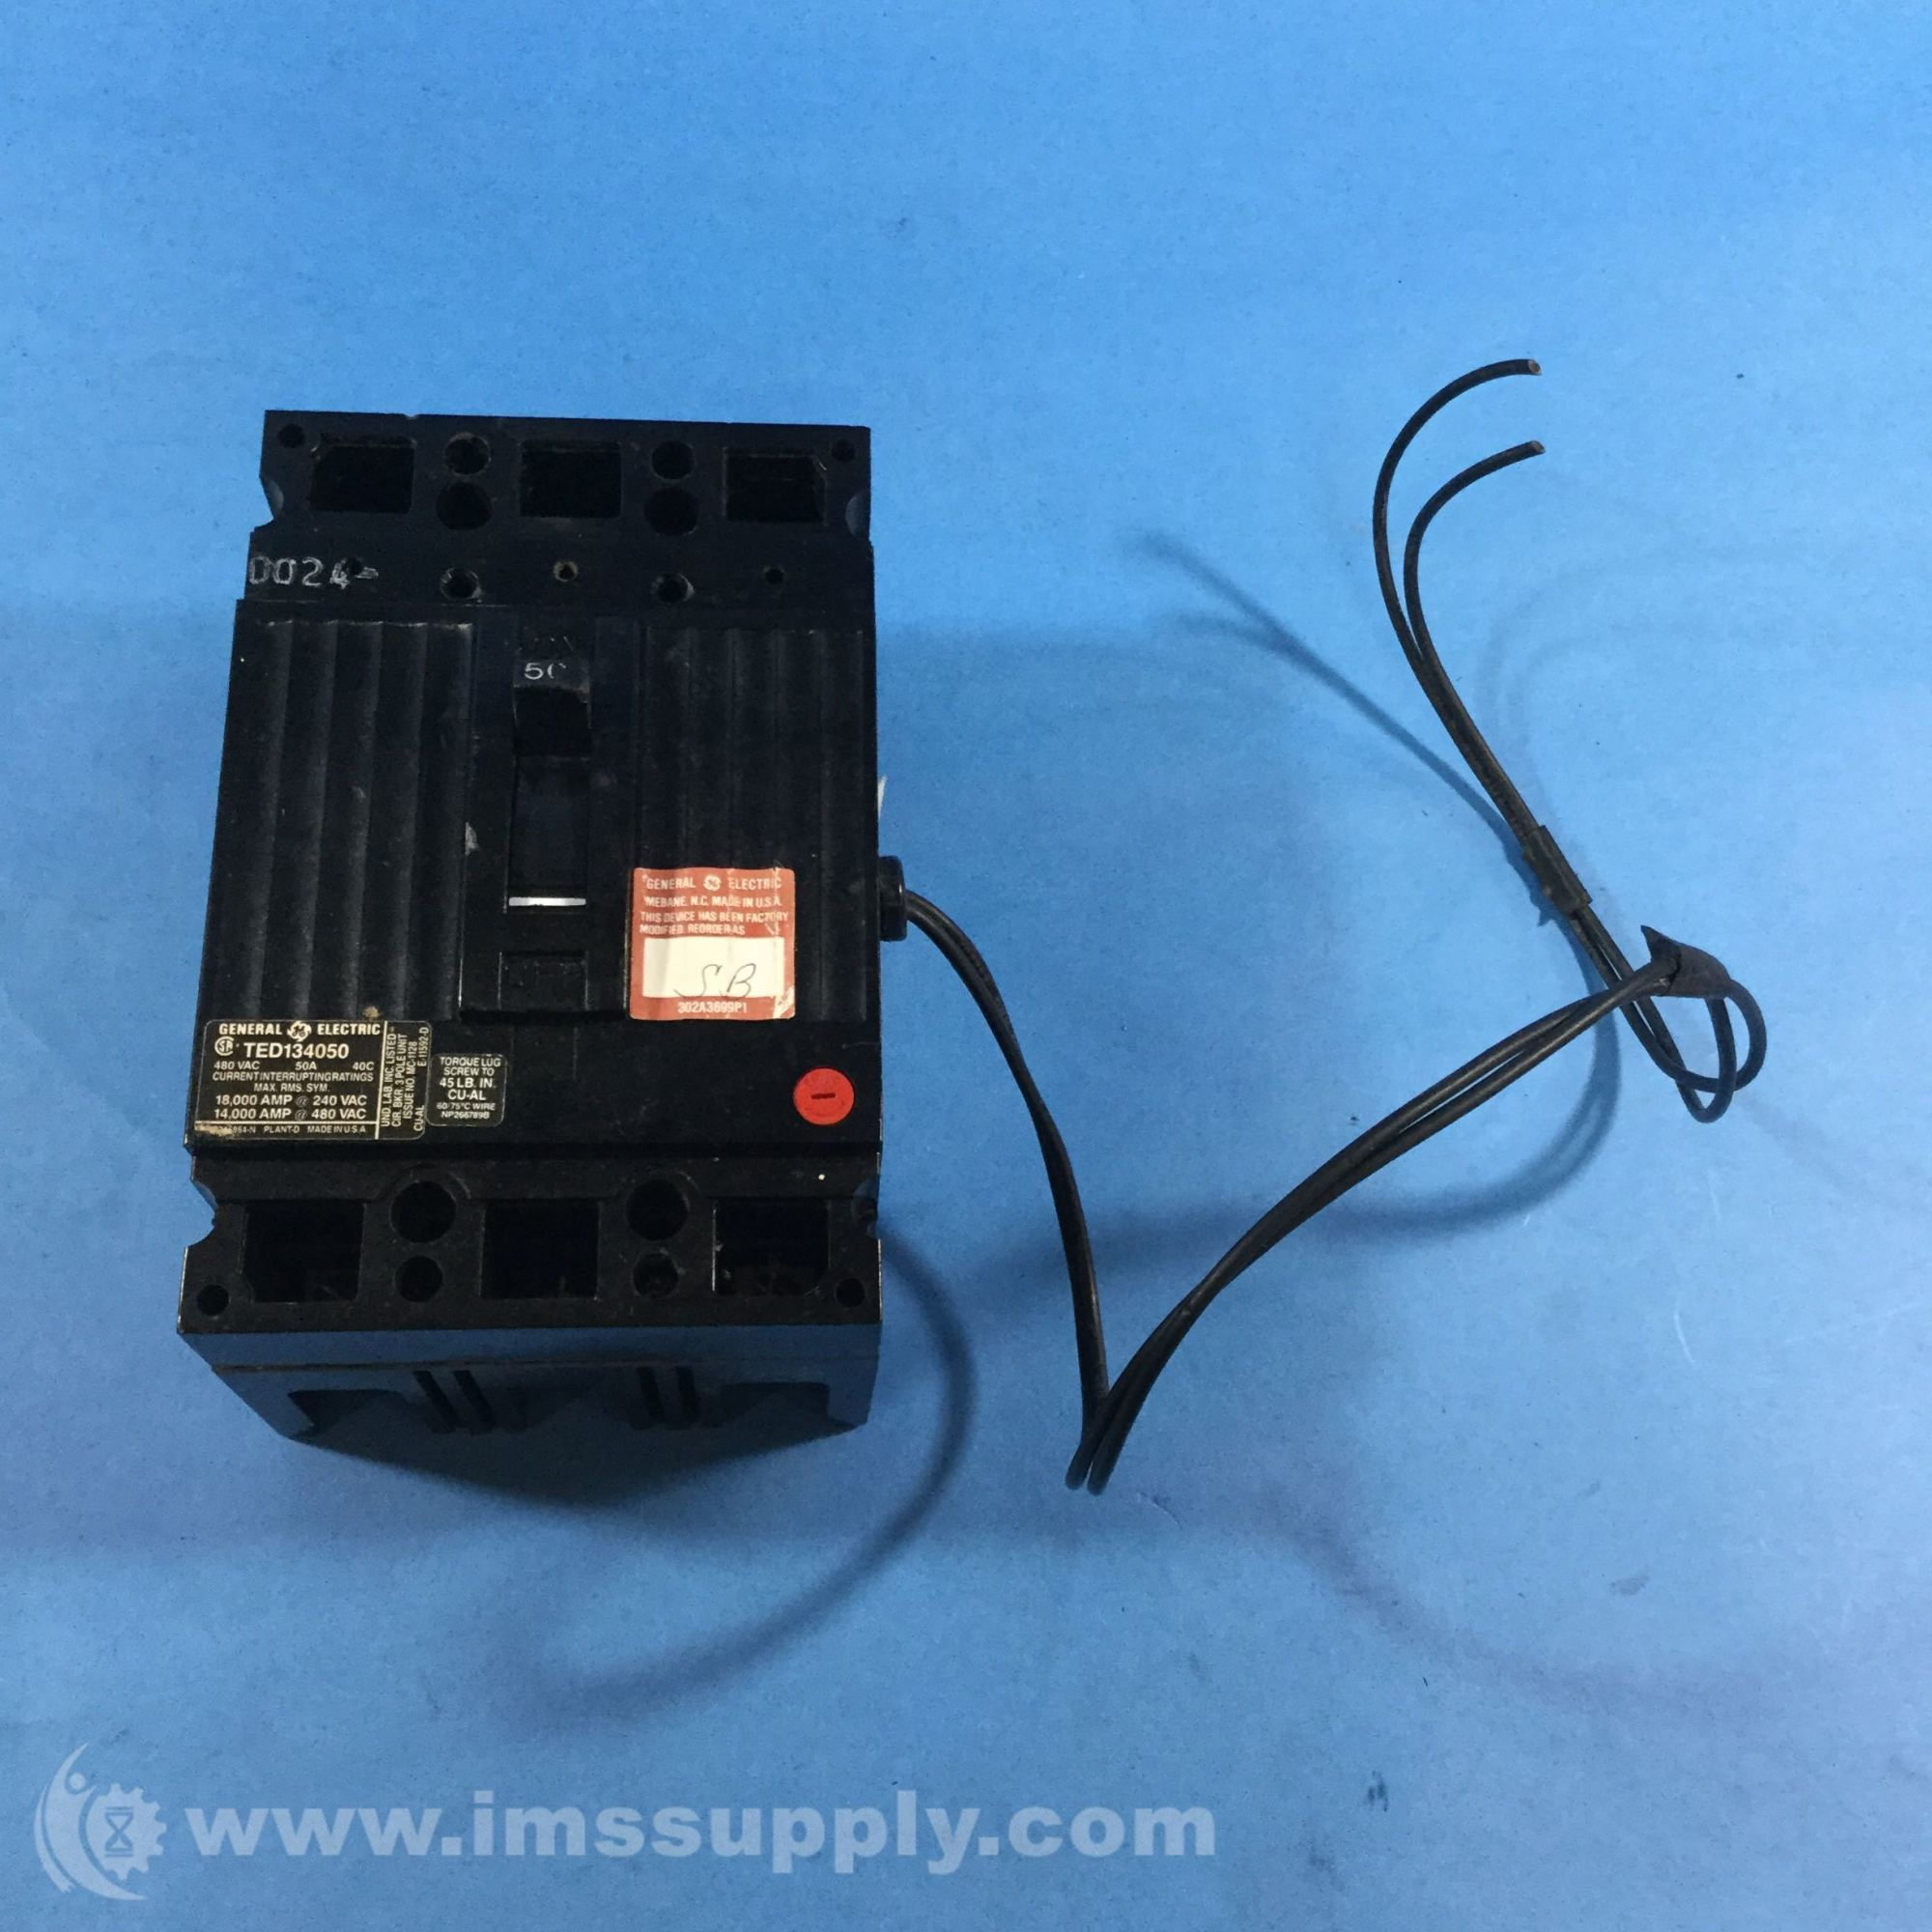 hight resolution of general electric ted134050 shunt trip device 120v to 240v ac ims supply